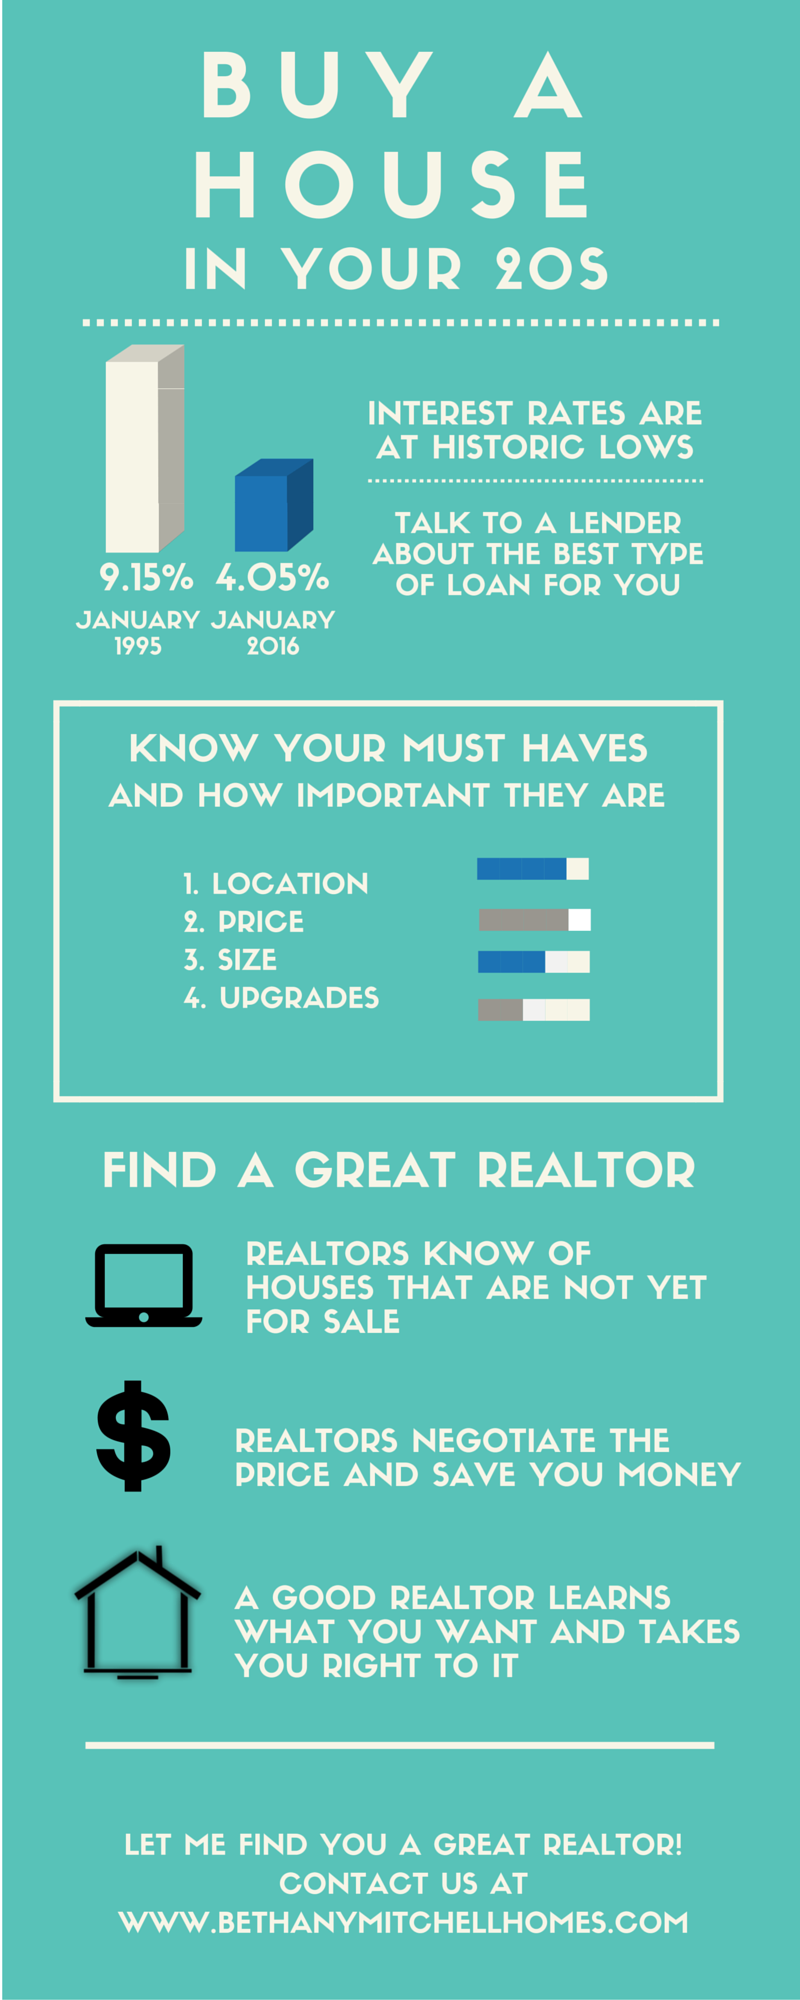 Bethany Mitchell Homes: Buy A House In Your Twenties Infographic